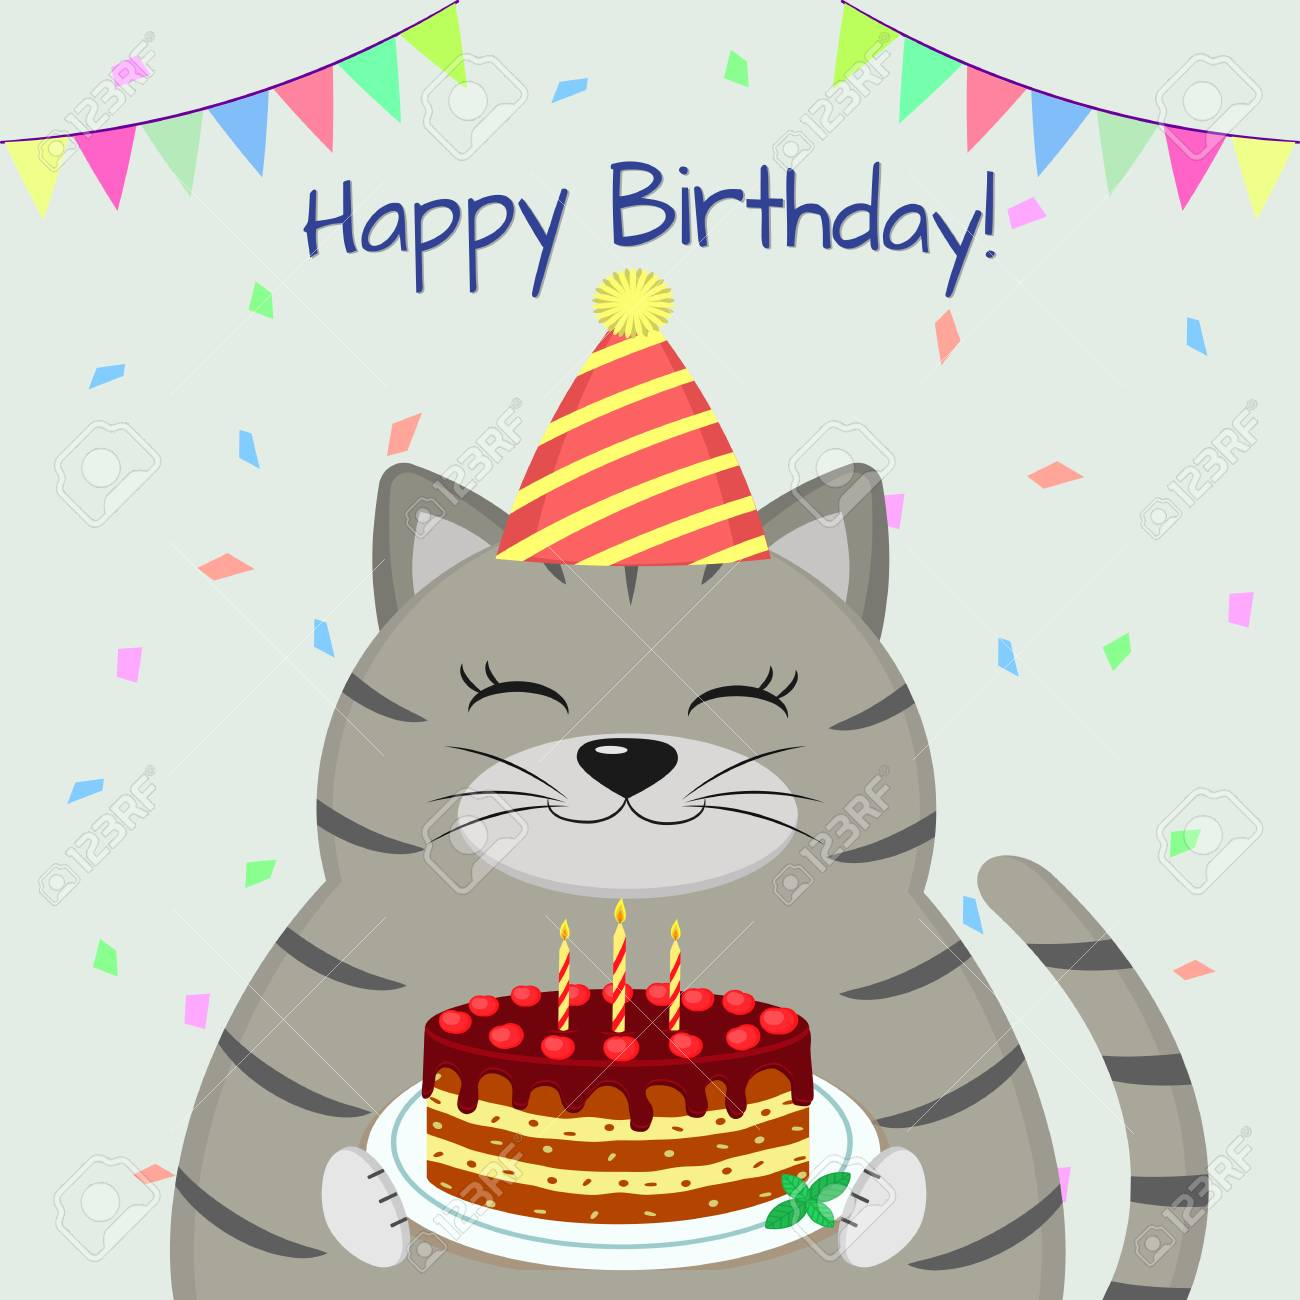 A Gray Fat Cat In The Cap Sits And Holds A Cake In Its Paws Royalty Free Cliparts Vectors And Stock Illustration Image 102051845